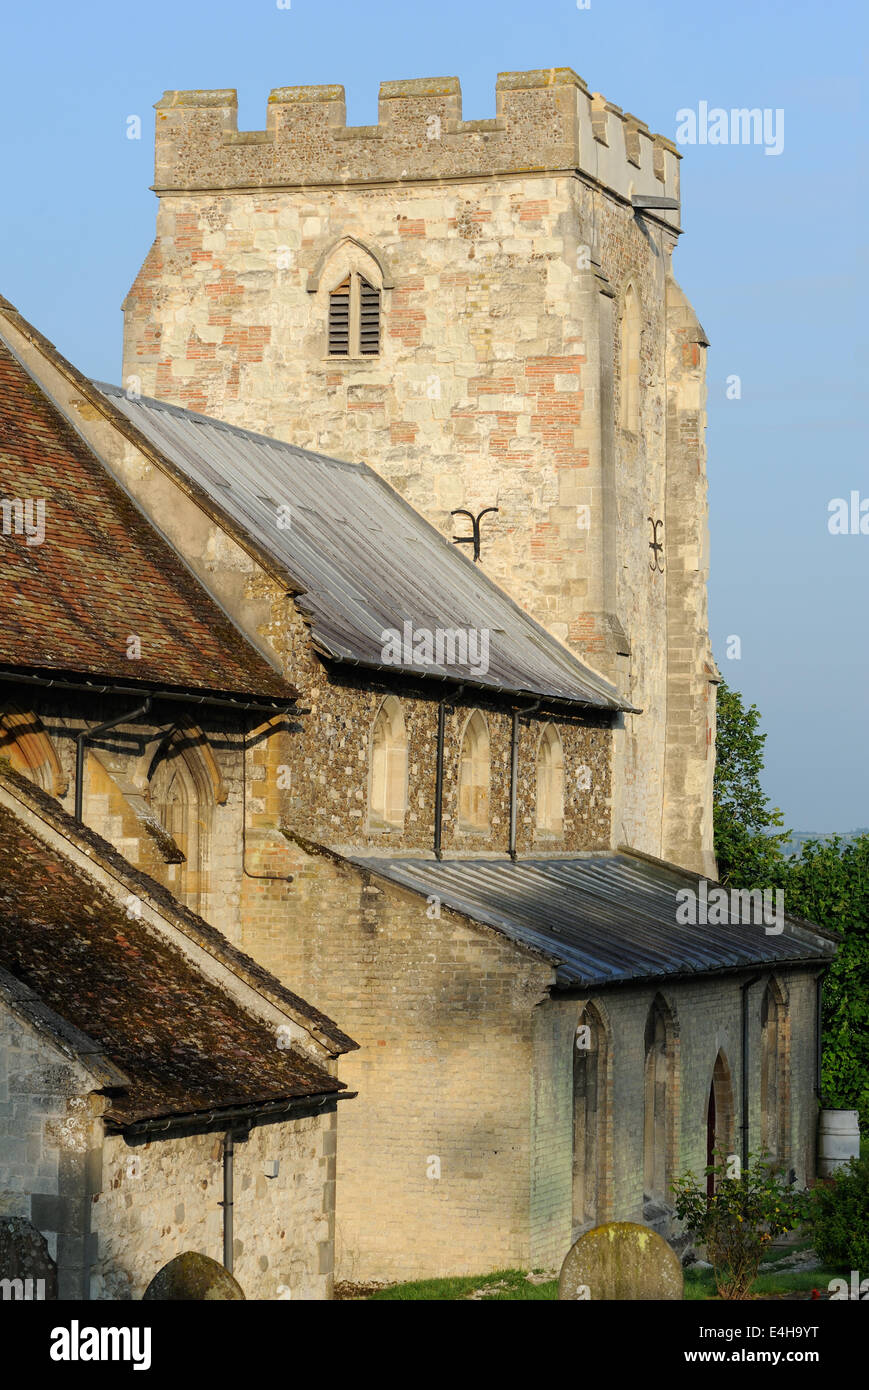 The thirteenth century tower of the Church of St Andrew, Orwell, and the Cambridgeshire countryside, Orwell, Cambridgeshire, - Stock Image